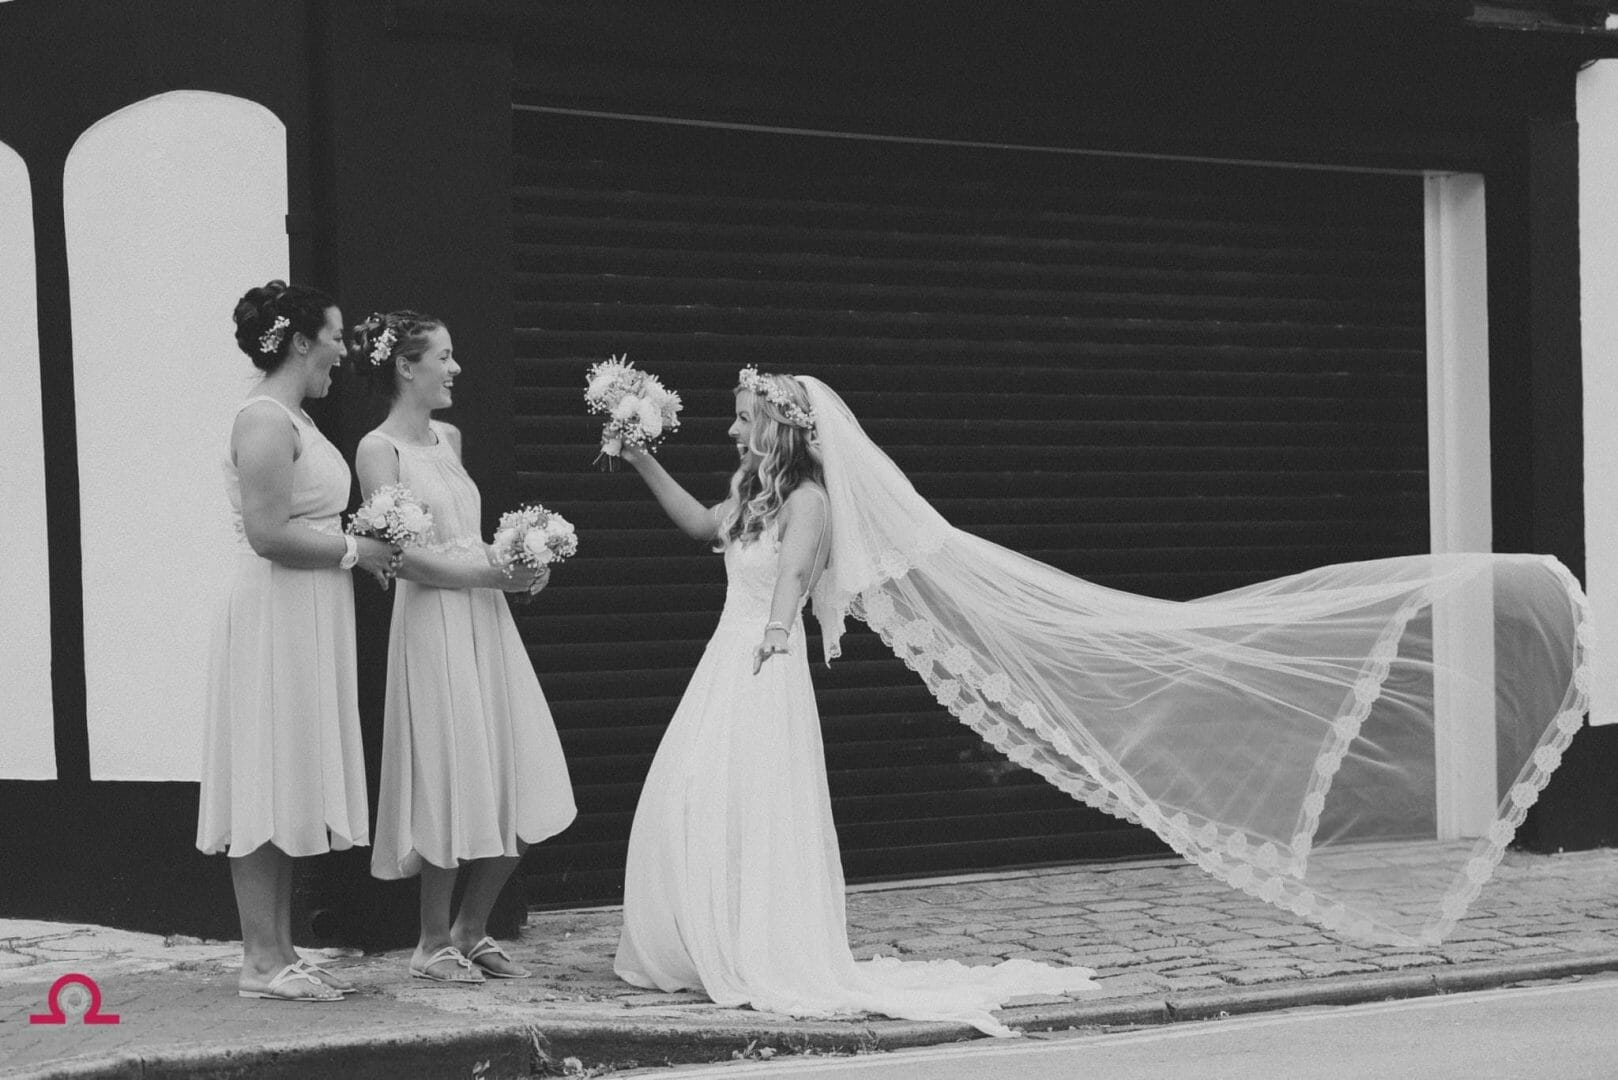 Black and white photograph on a windy veil